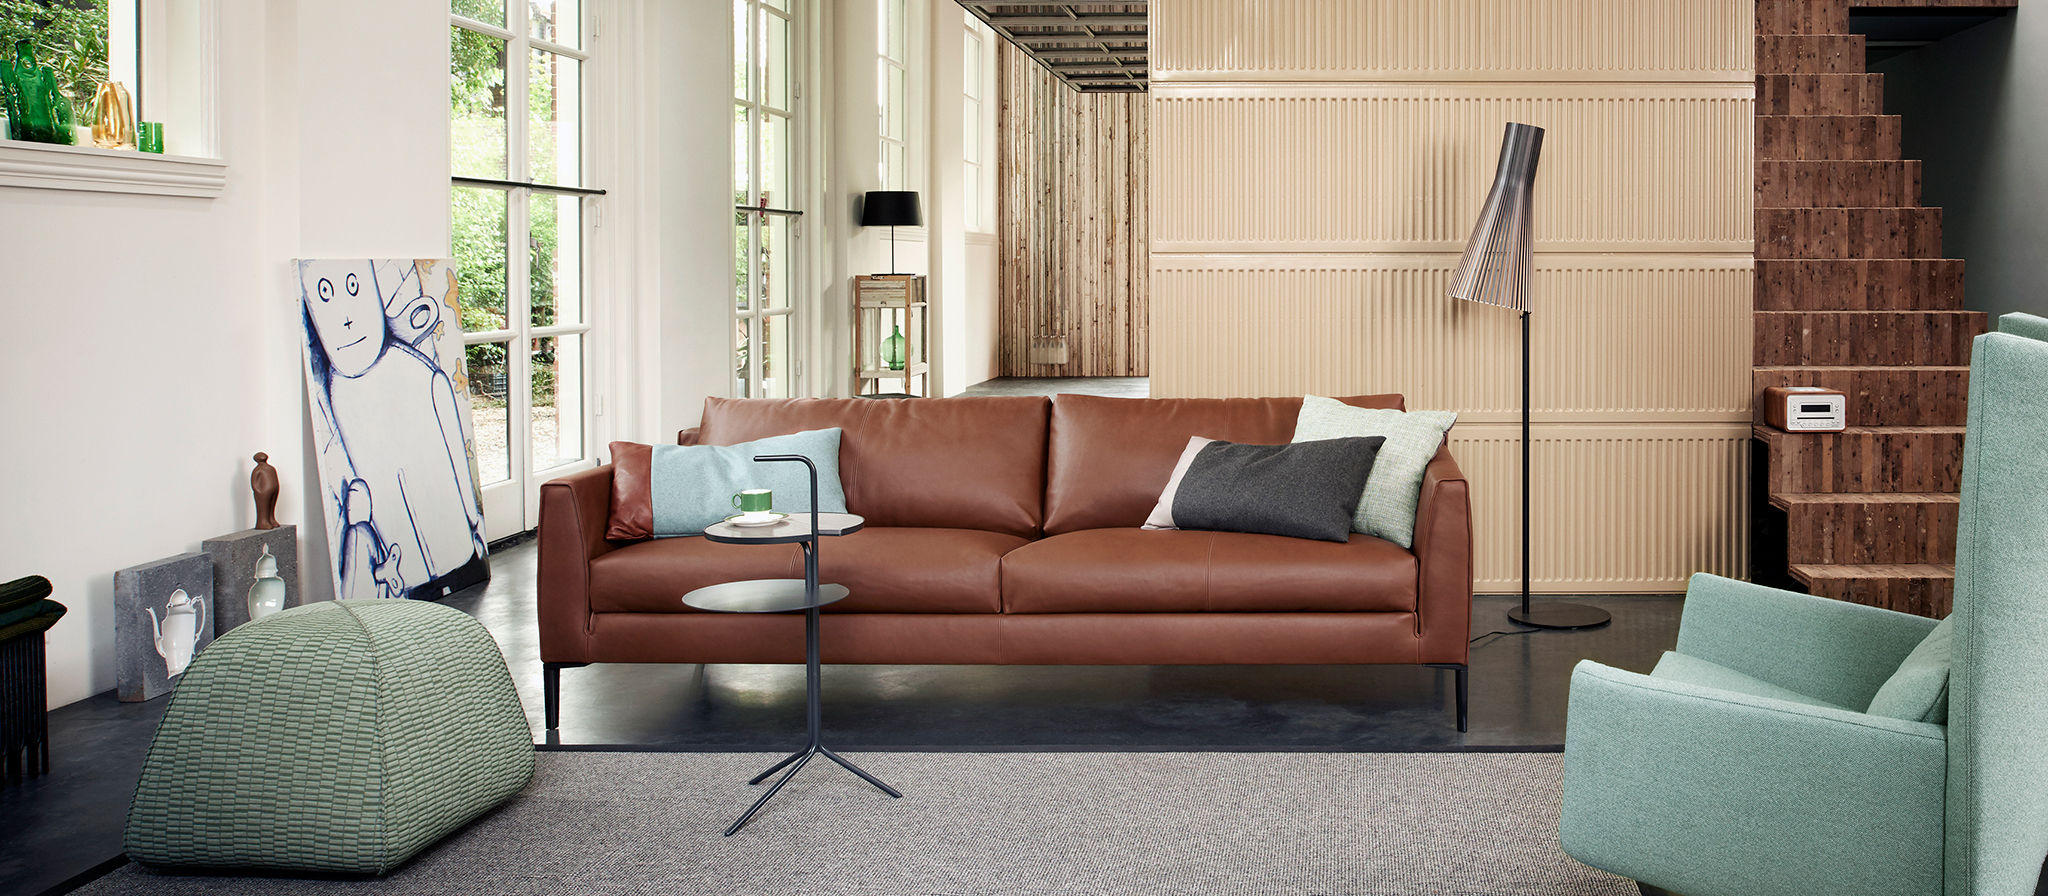 Sofa Heelz of Design On Stock you can find it DOTshop shops in Amsterdam and Haarlem